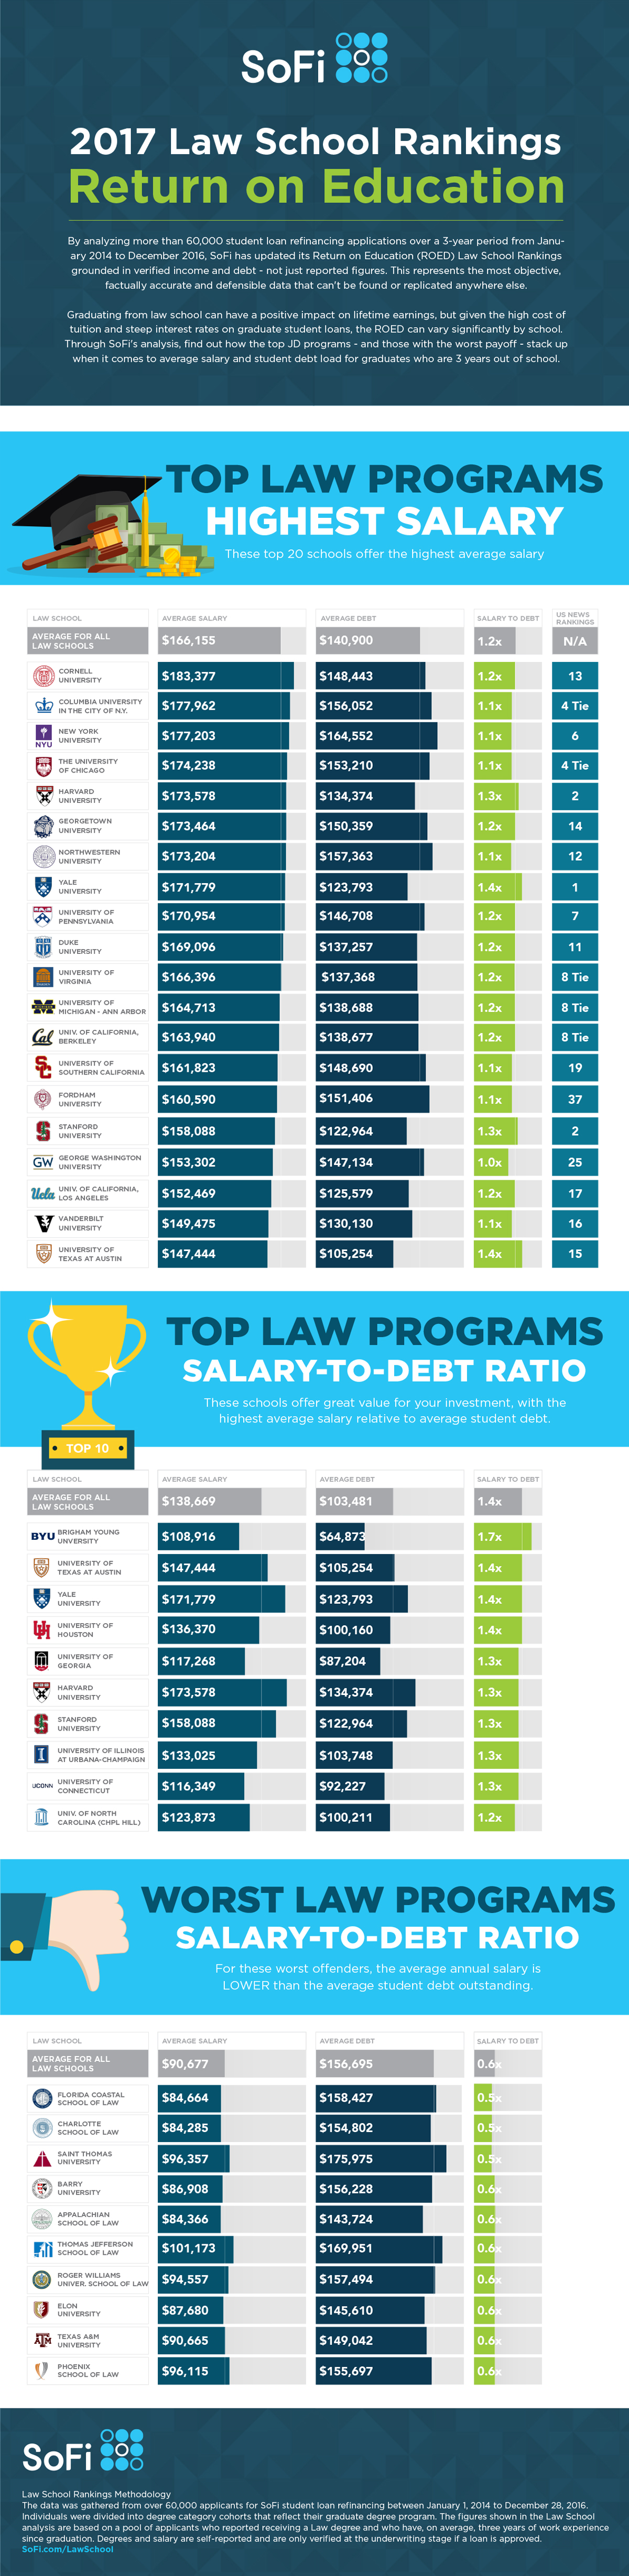 SoFi ROEd Inforgraphic - Law School Rankings